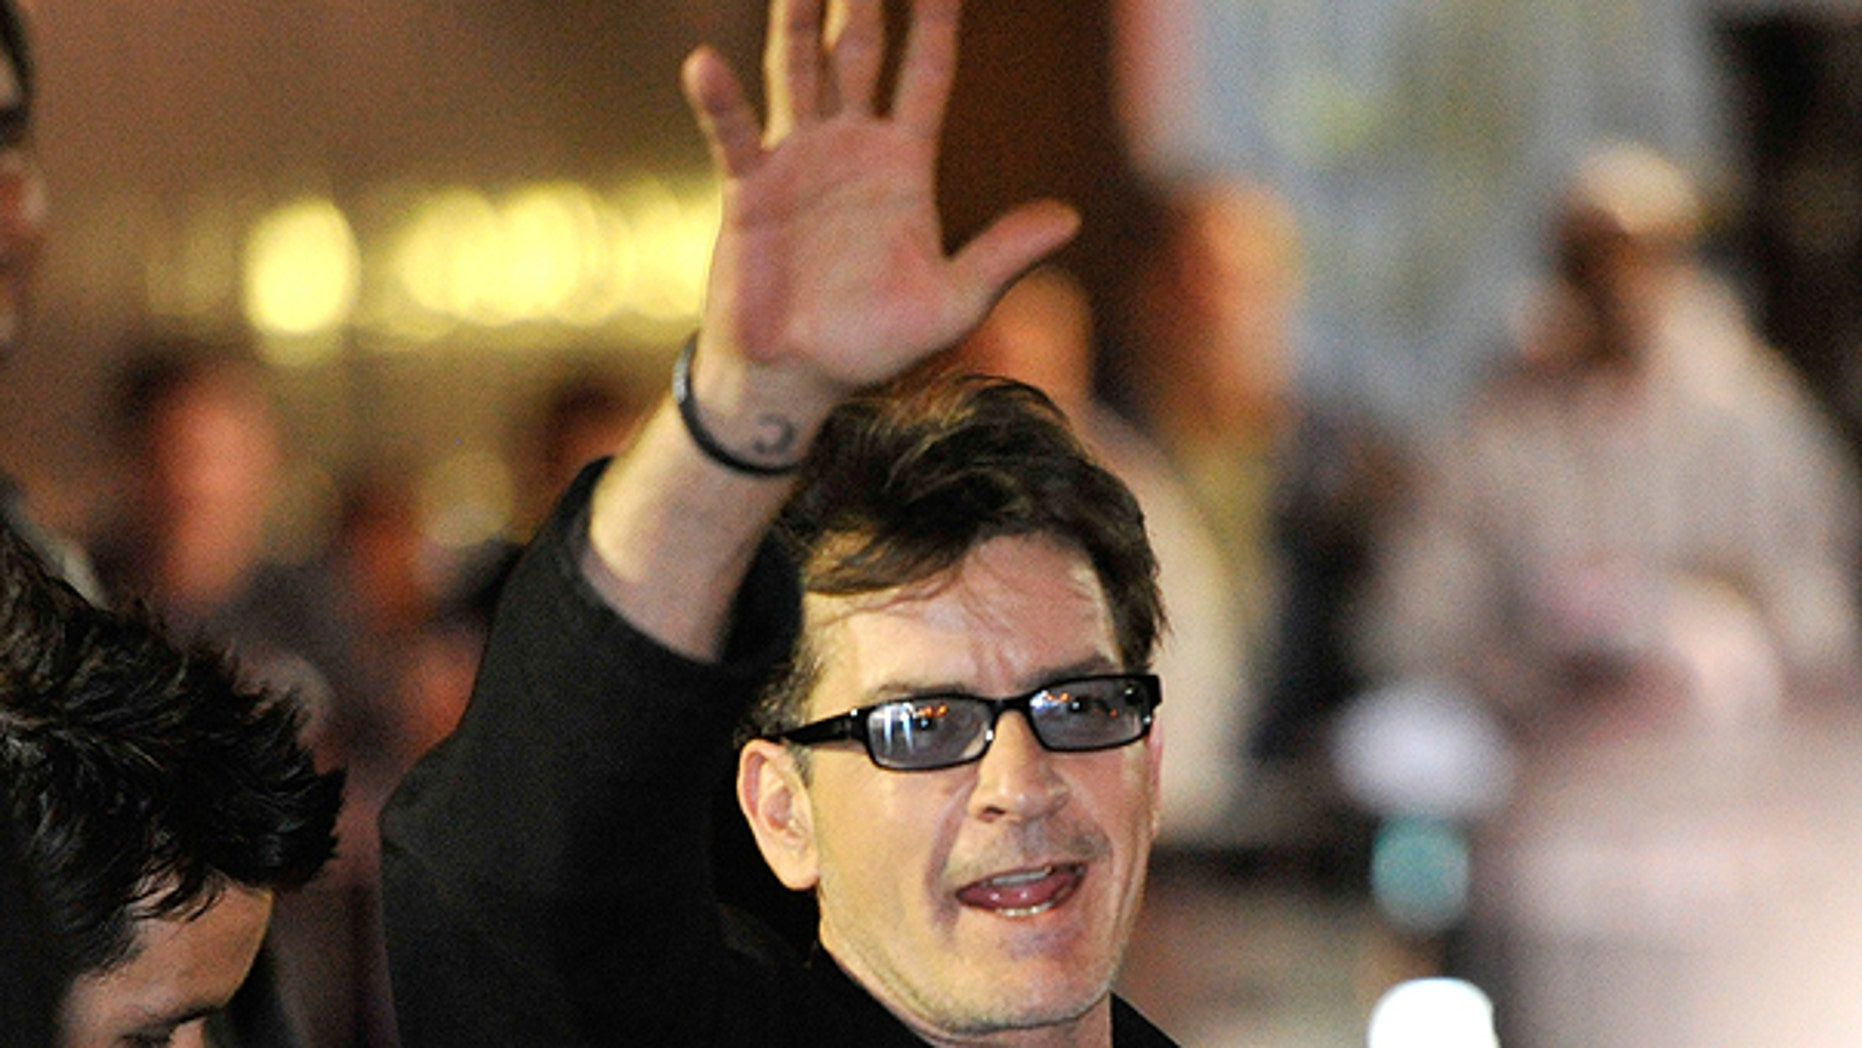 April 3: Charlie Sheen waves to fans as he leaves the Chicago Theatre in Chicago.